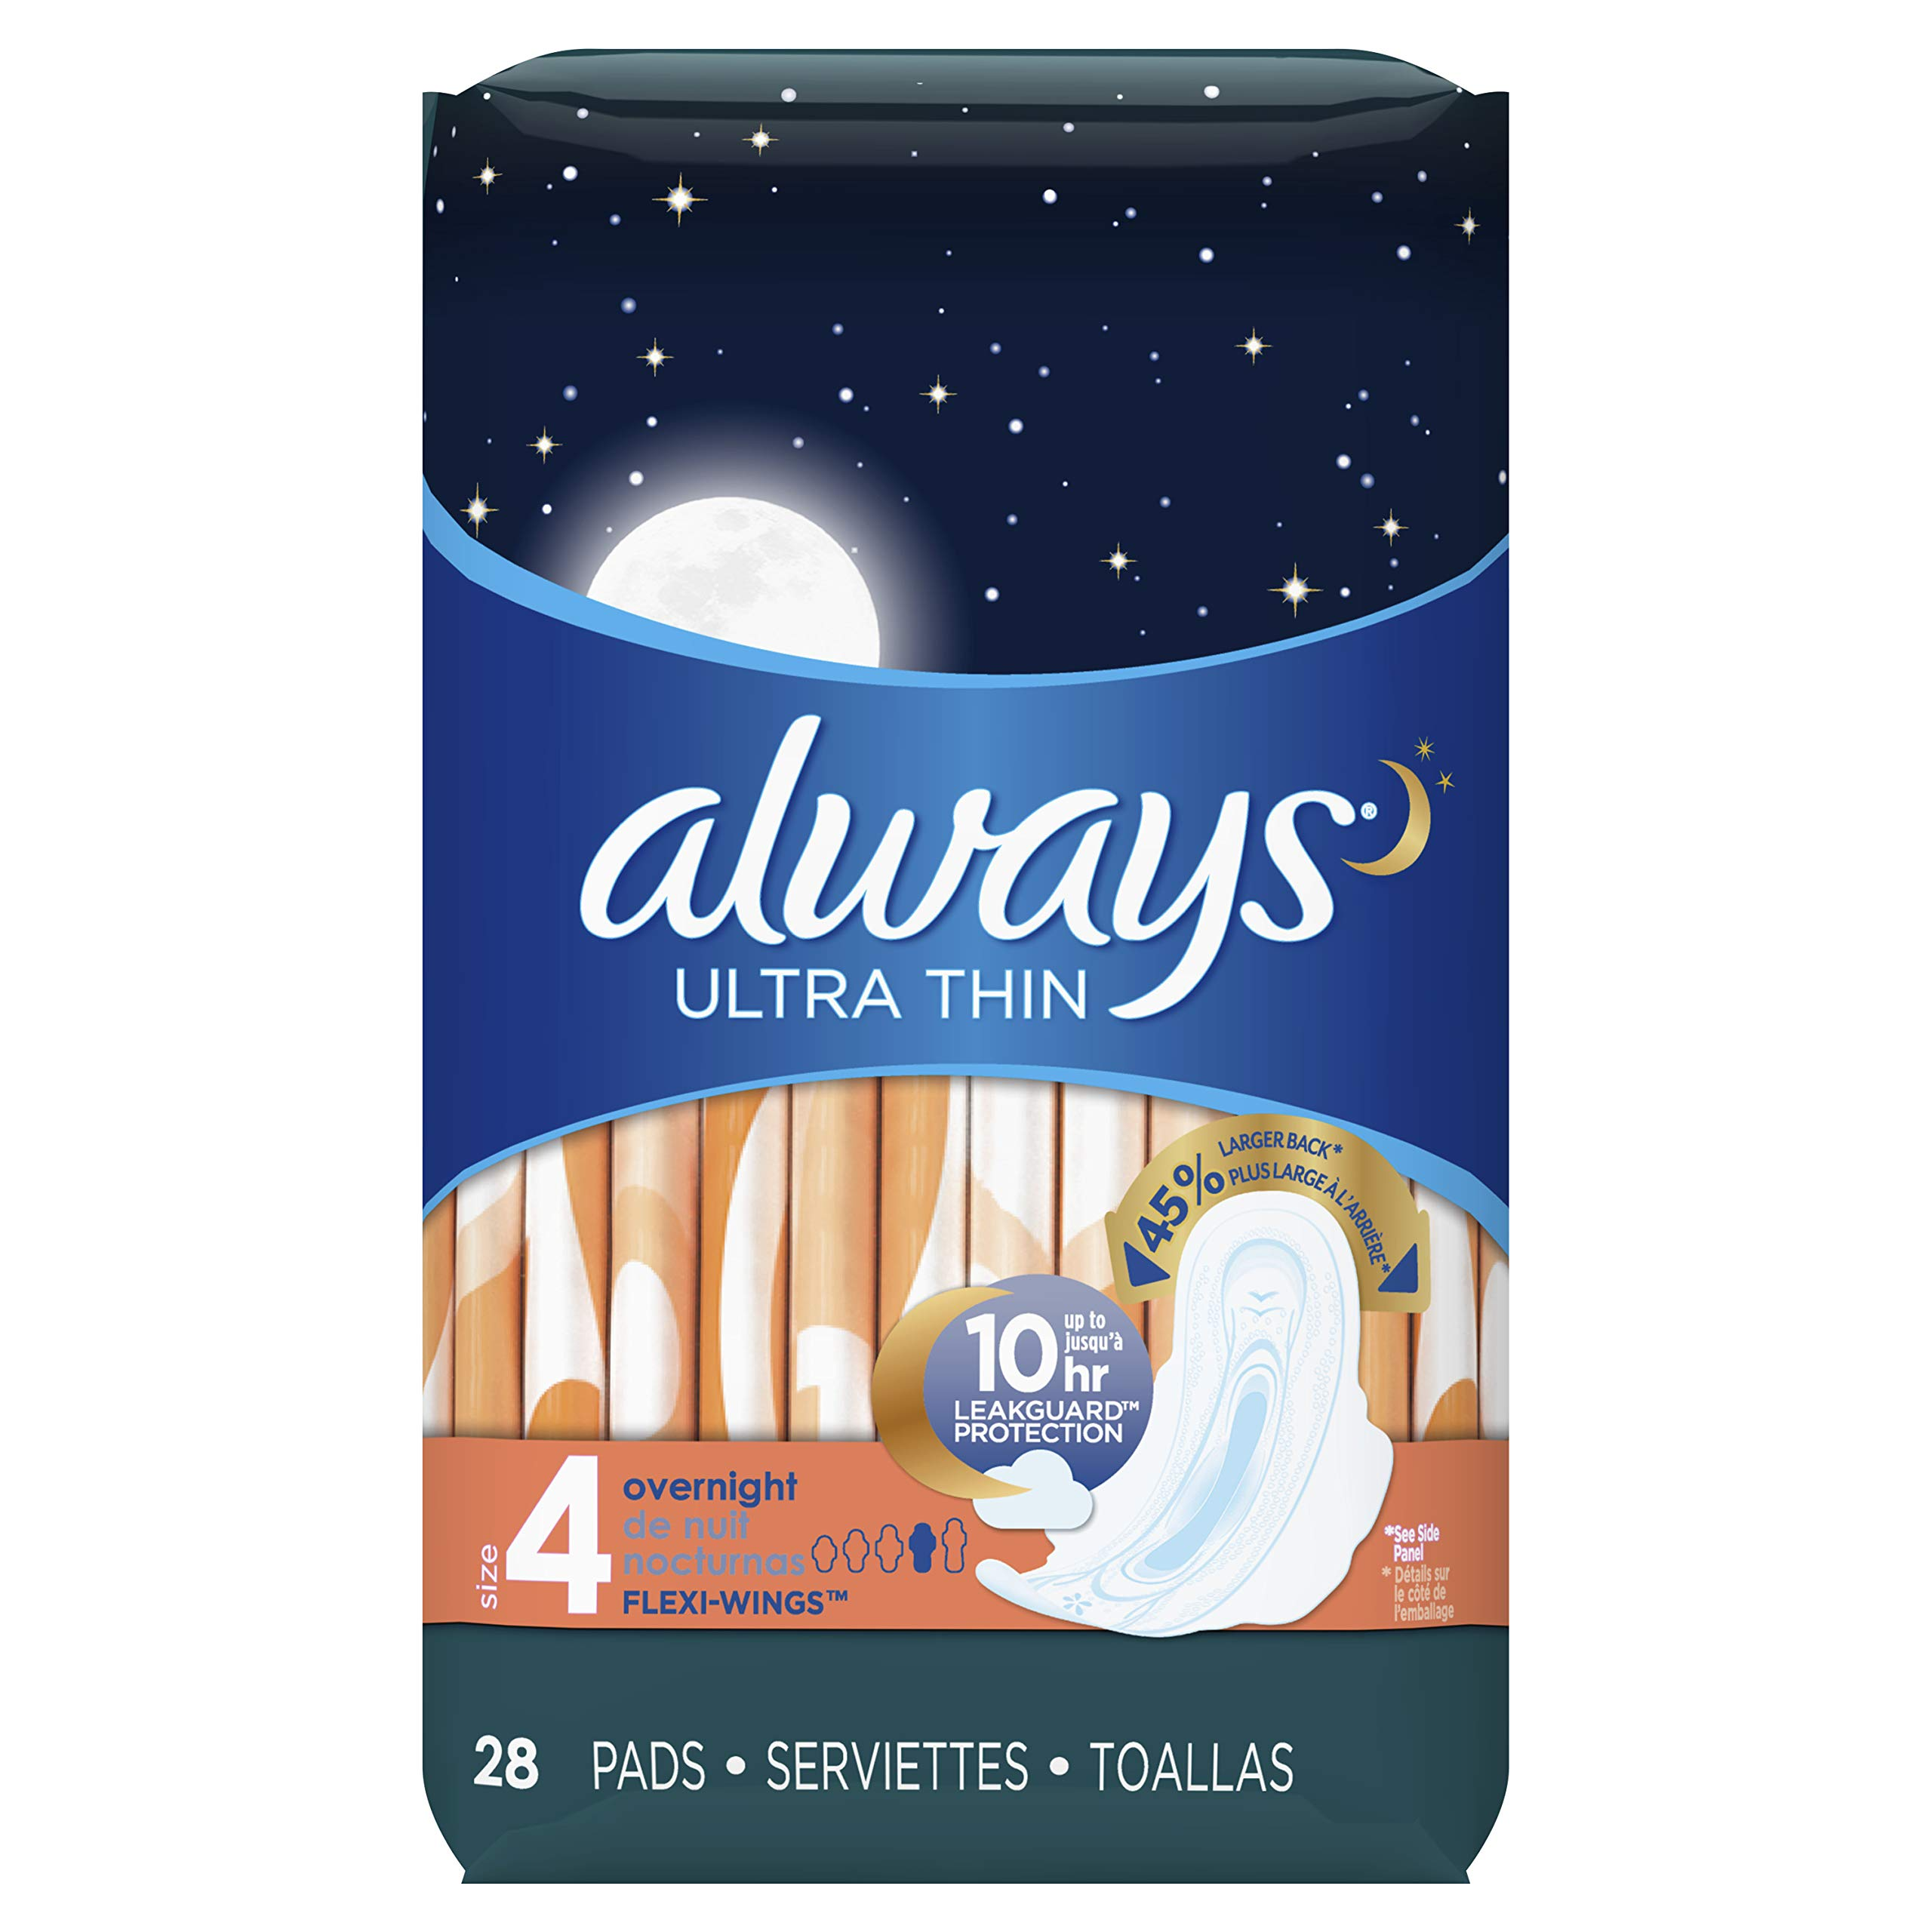 Always Ultra Thin Feminine Pads with Wings for Women, Size 4, Overnight Absorbency, Unscented, 28 count - Pack of 3 (84 Count Total) (Packaging May Vary) by Always